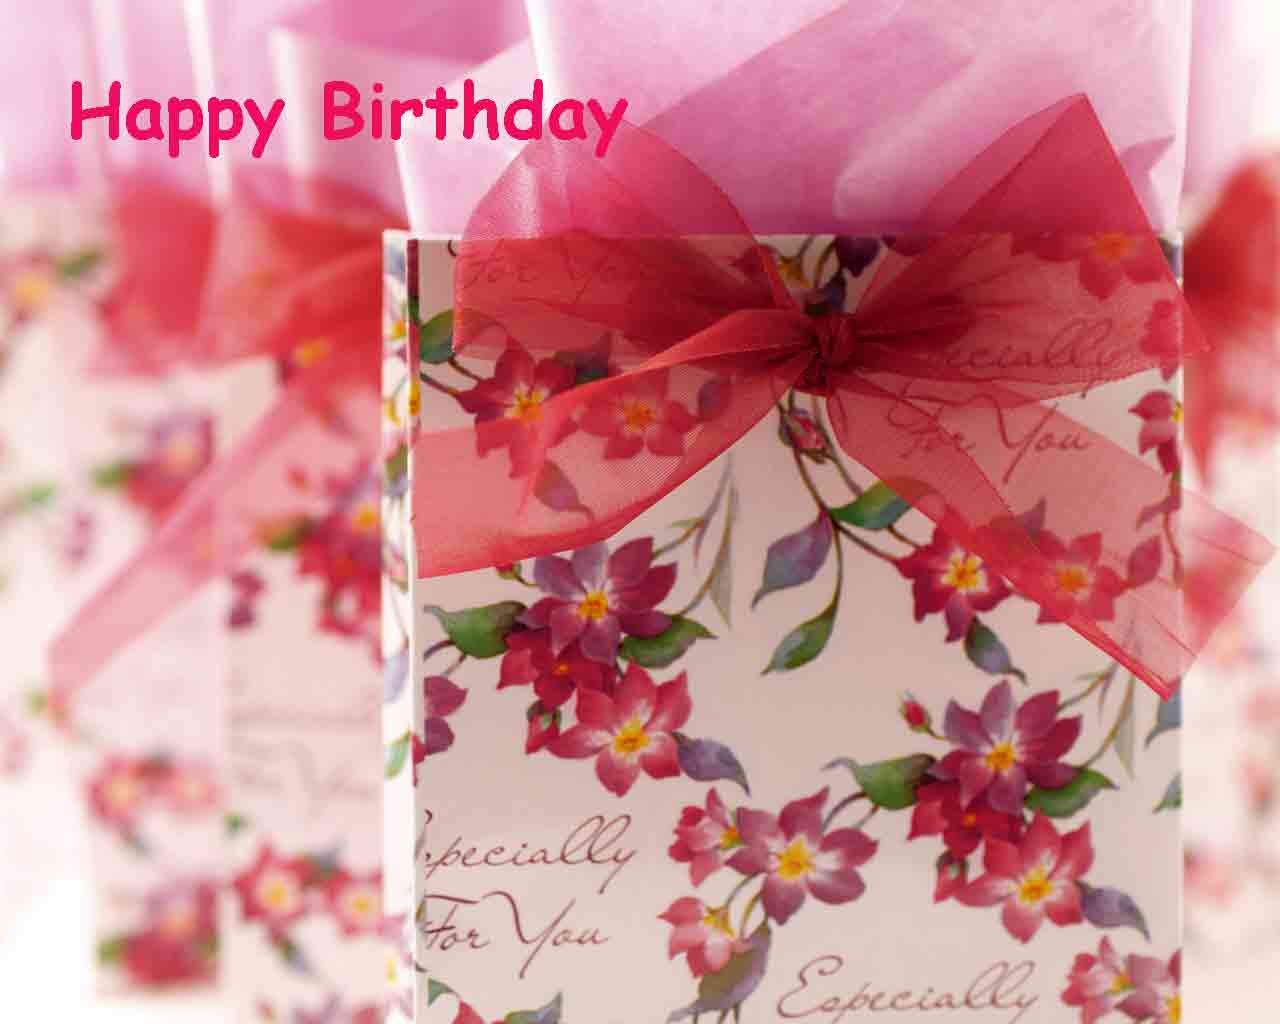 The Collection Of Great And Sincere Birthday Wishes To Send Mom